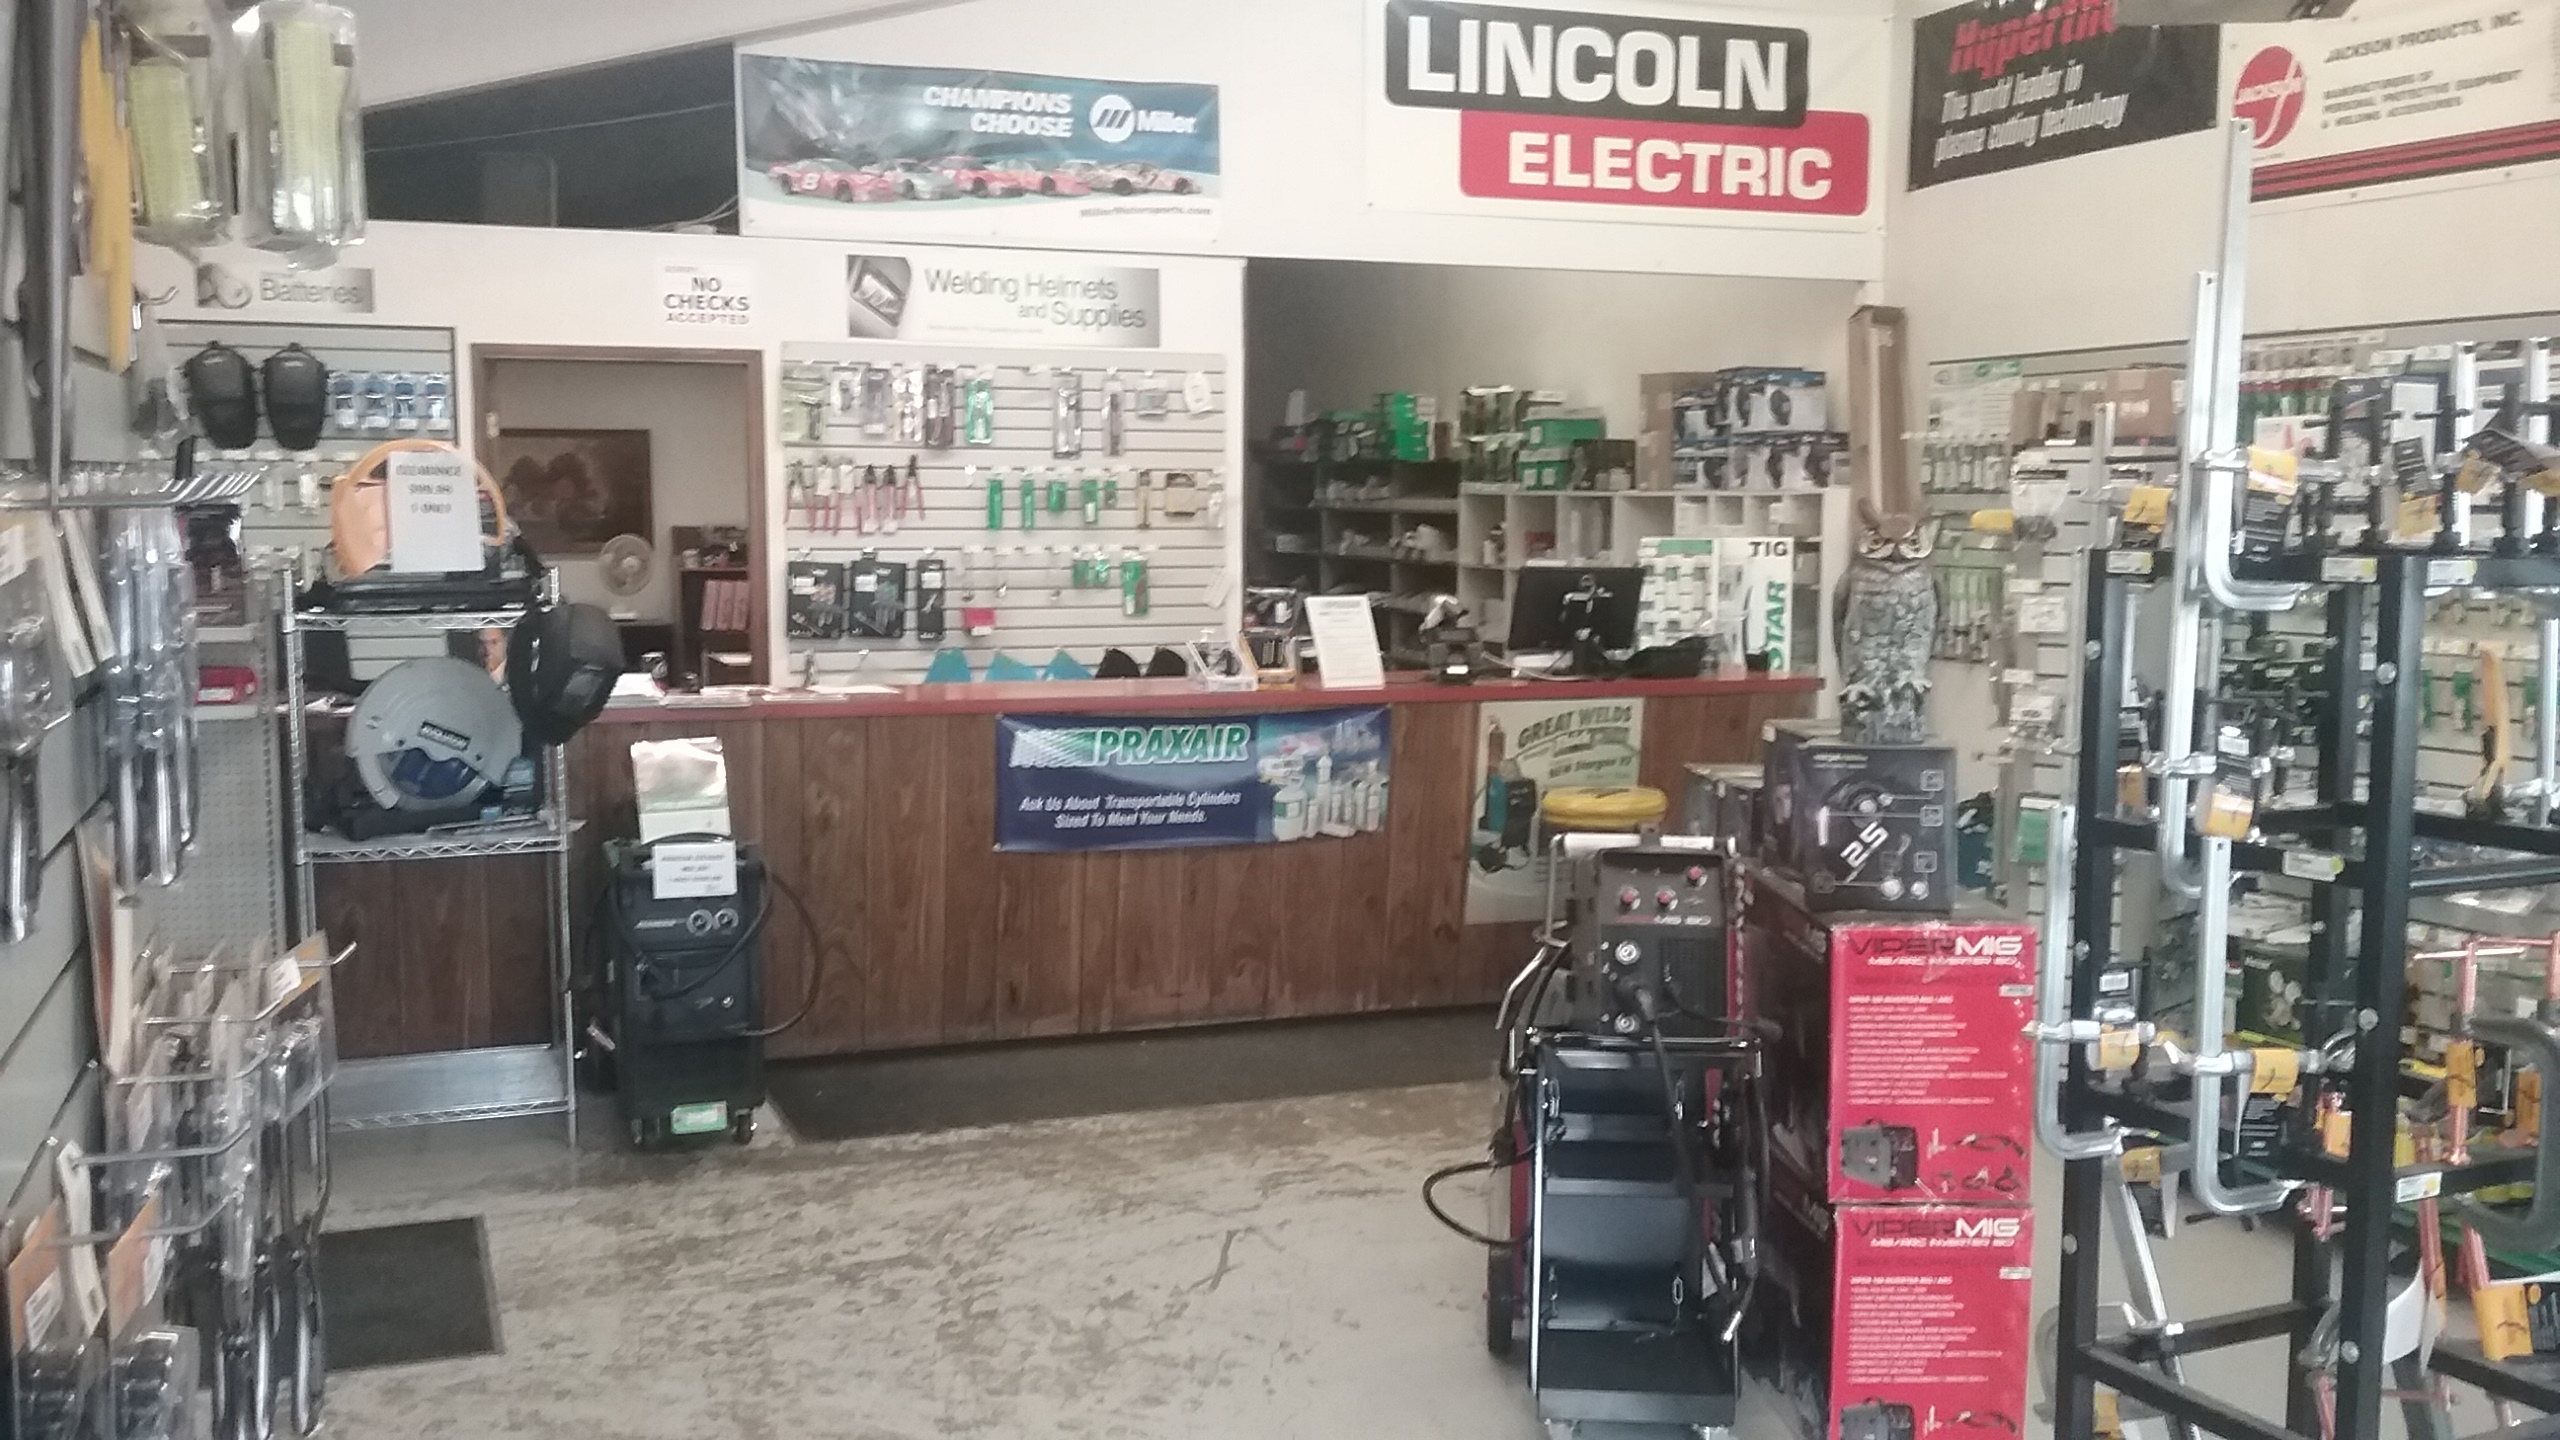 Praxair Welding Gas and Supply Store   400 Roosevelt Ave E, Enumclaw, WA, 98022   +1 (360) 825-4222